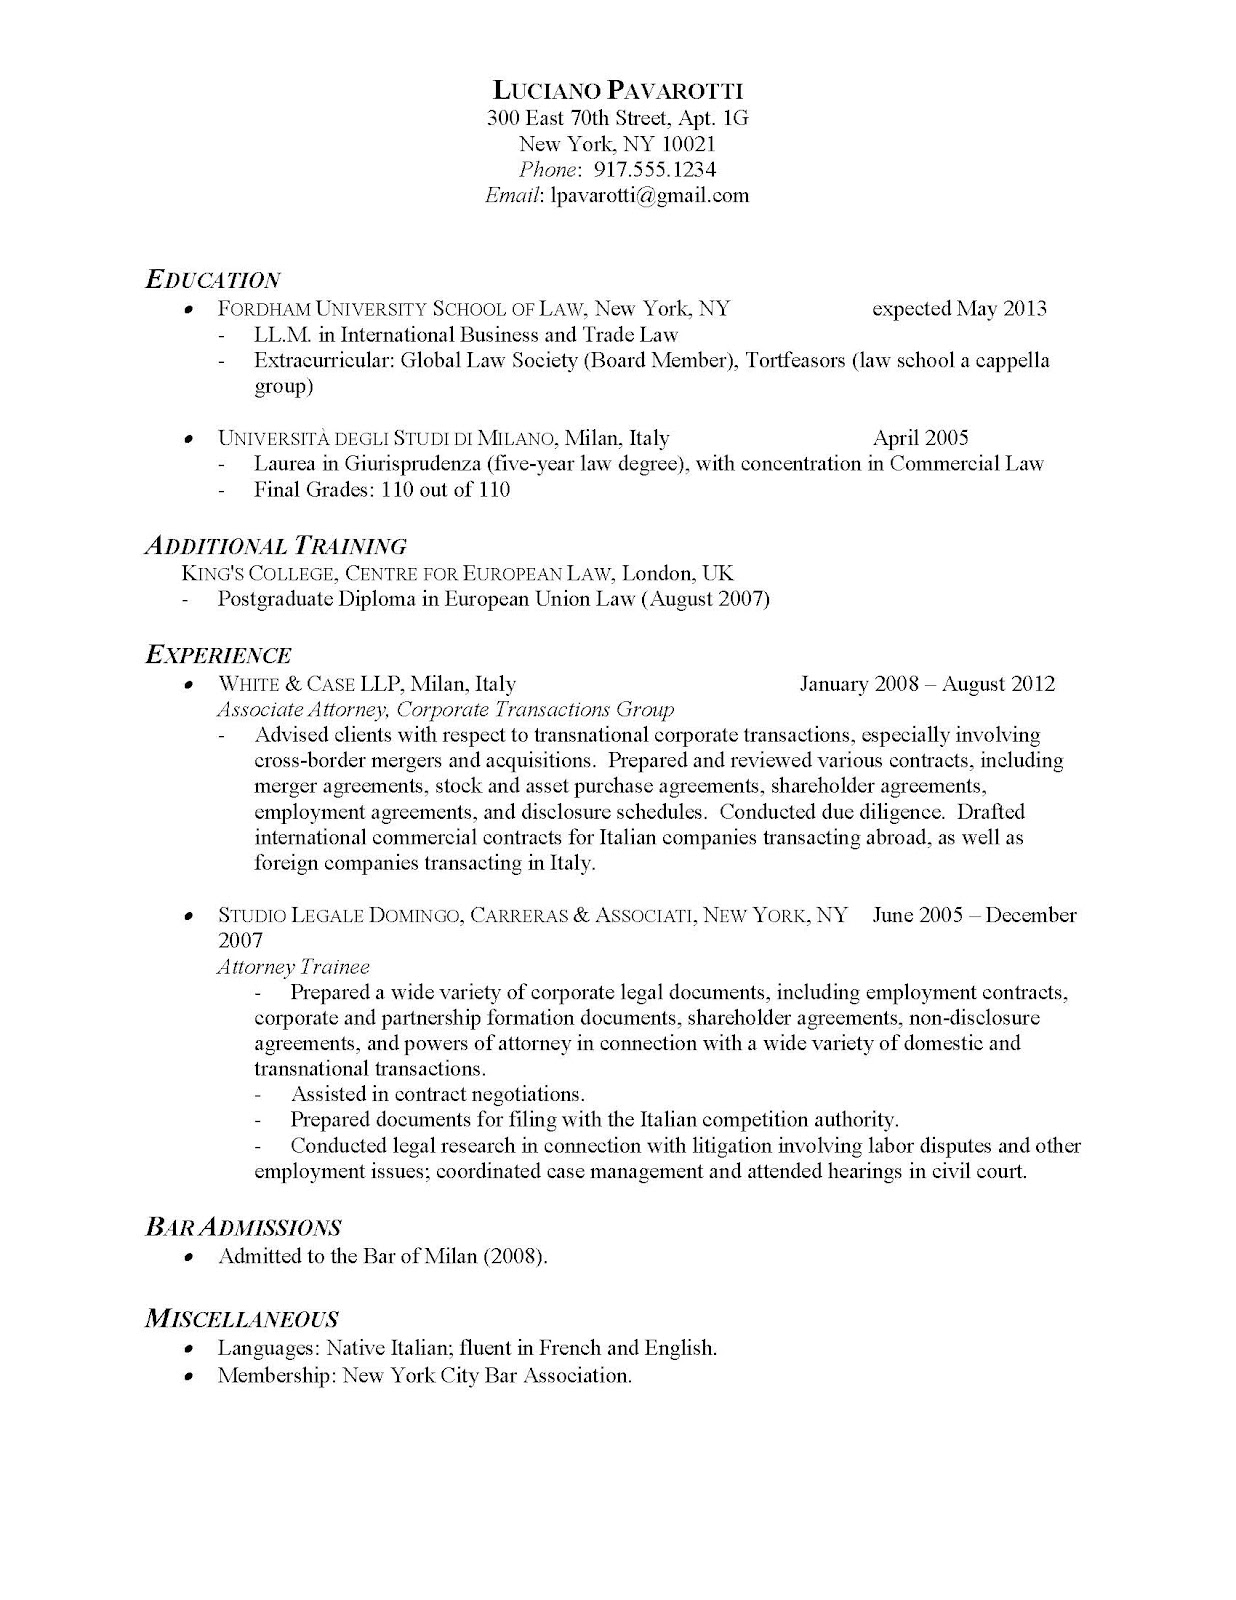 Opposenewapstandardsus  Stunning Resume Reviewer Resume Reviewer Medioxco With Licious Resume Reviewer Hiringlibrariansresumedoc  Hiringlibrariansresumedoc   With Adorable Importance Of A Resume Also The Ladders Resume In Addition Skill Based Resume Examples And Resumes Format As Well As Downloadable Resume Additionally Apprentice Electrician Resume From Medioxco With Opposenewapstandardsus  Licious Resume Reviewer Resume Reviewer Medioxco With Adorable Resume Reviewer Hiringlibrariansresumedoc  Hiringlibrariansresumedoc   And Stunning Importance Of A Resume Also The Ladders Resume In Addition Skill Based Resume Examples From Medioxco